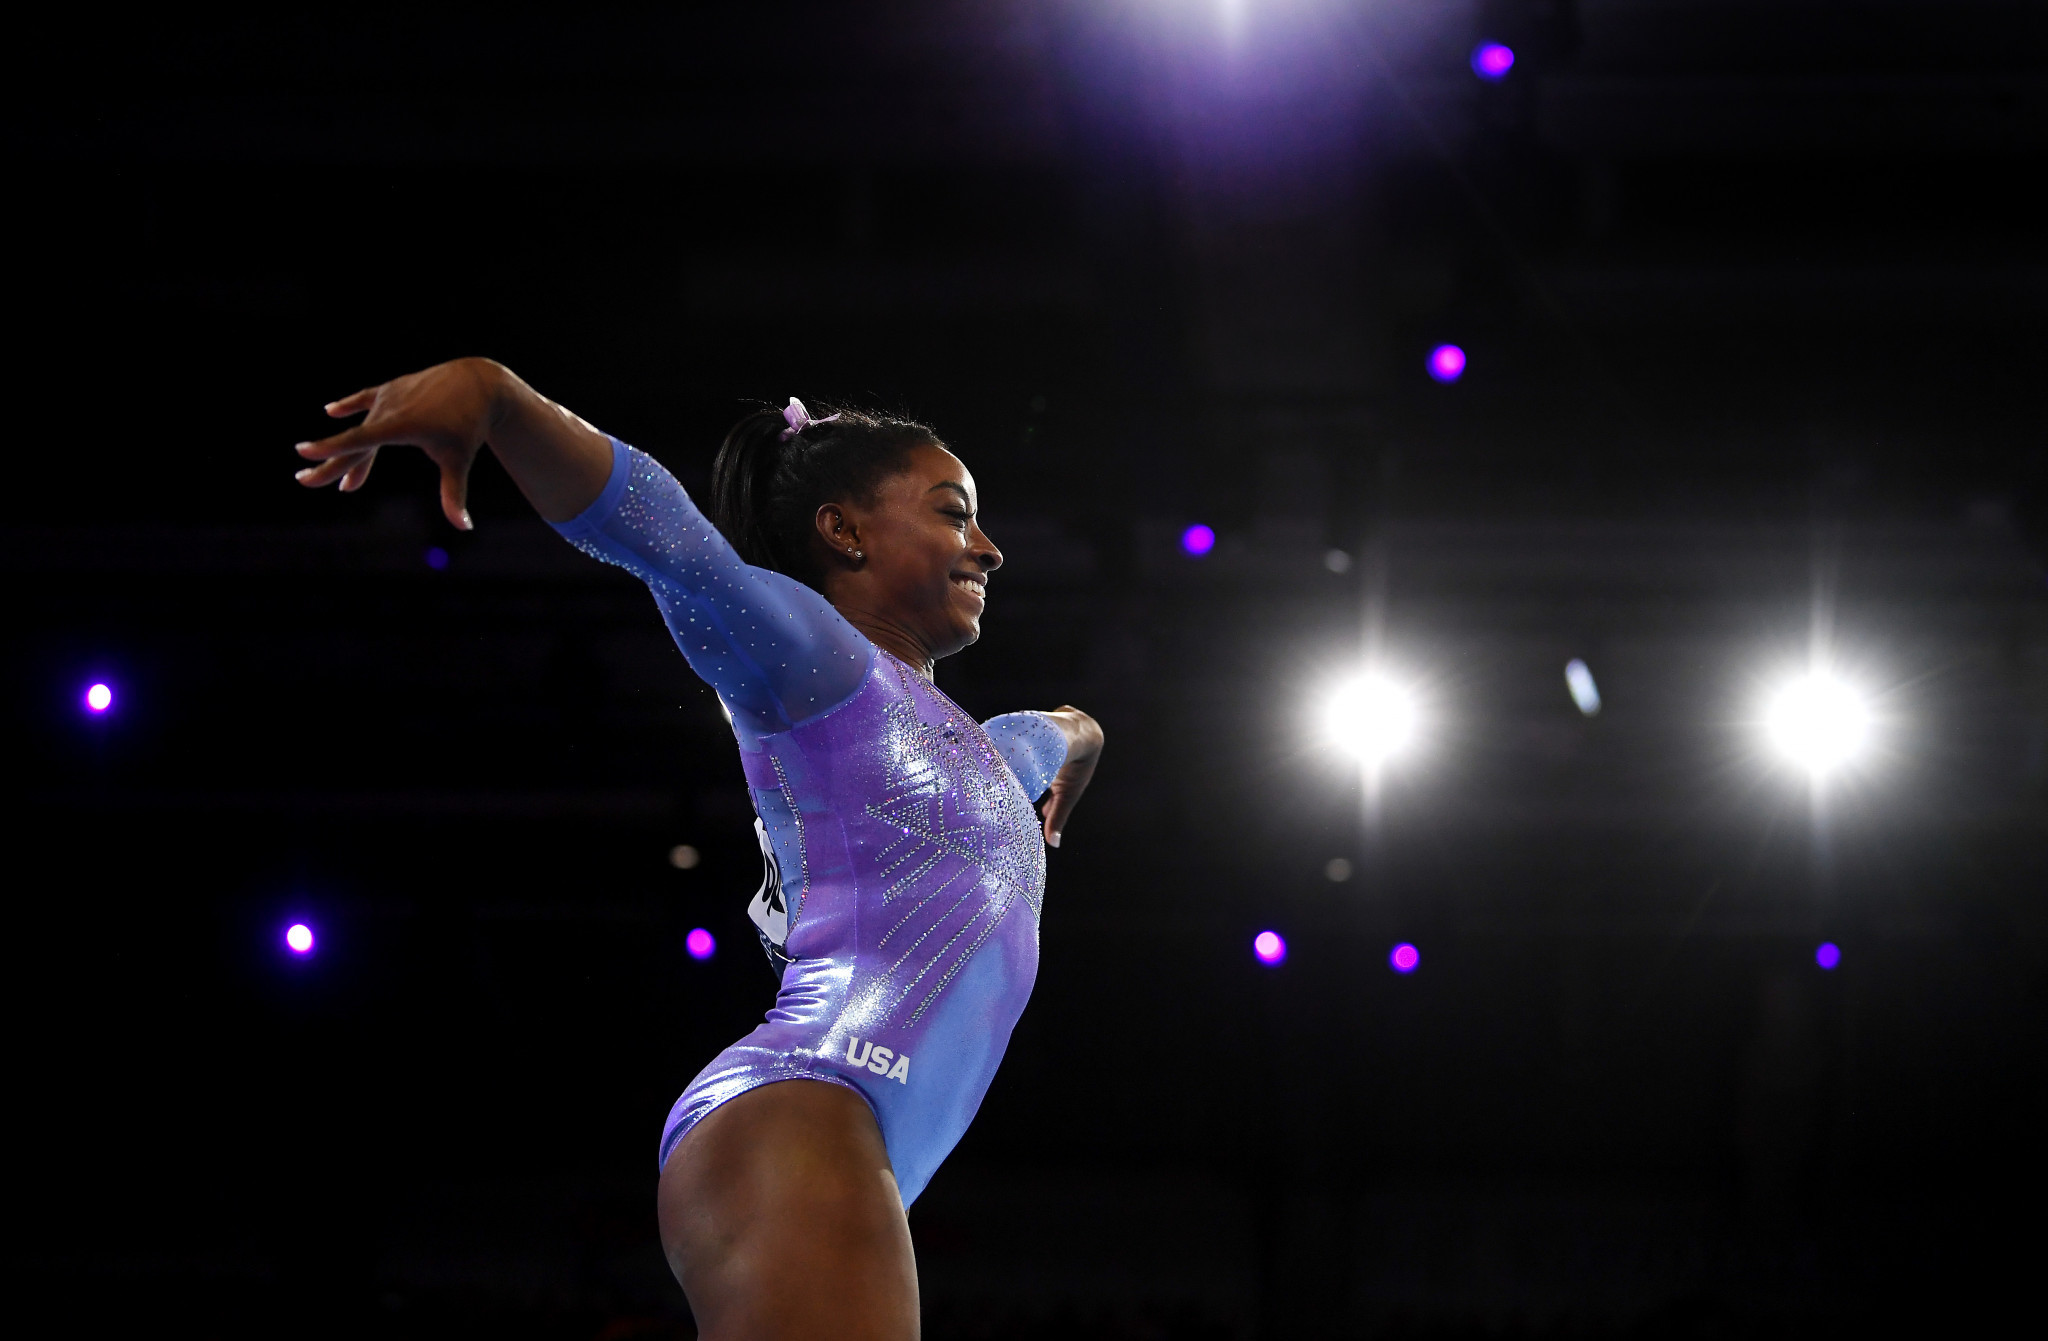 Simone Biles has indicated she may compete at Paris 2024 ©Getty Images